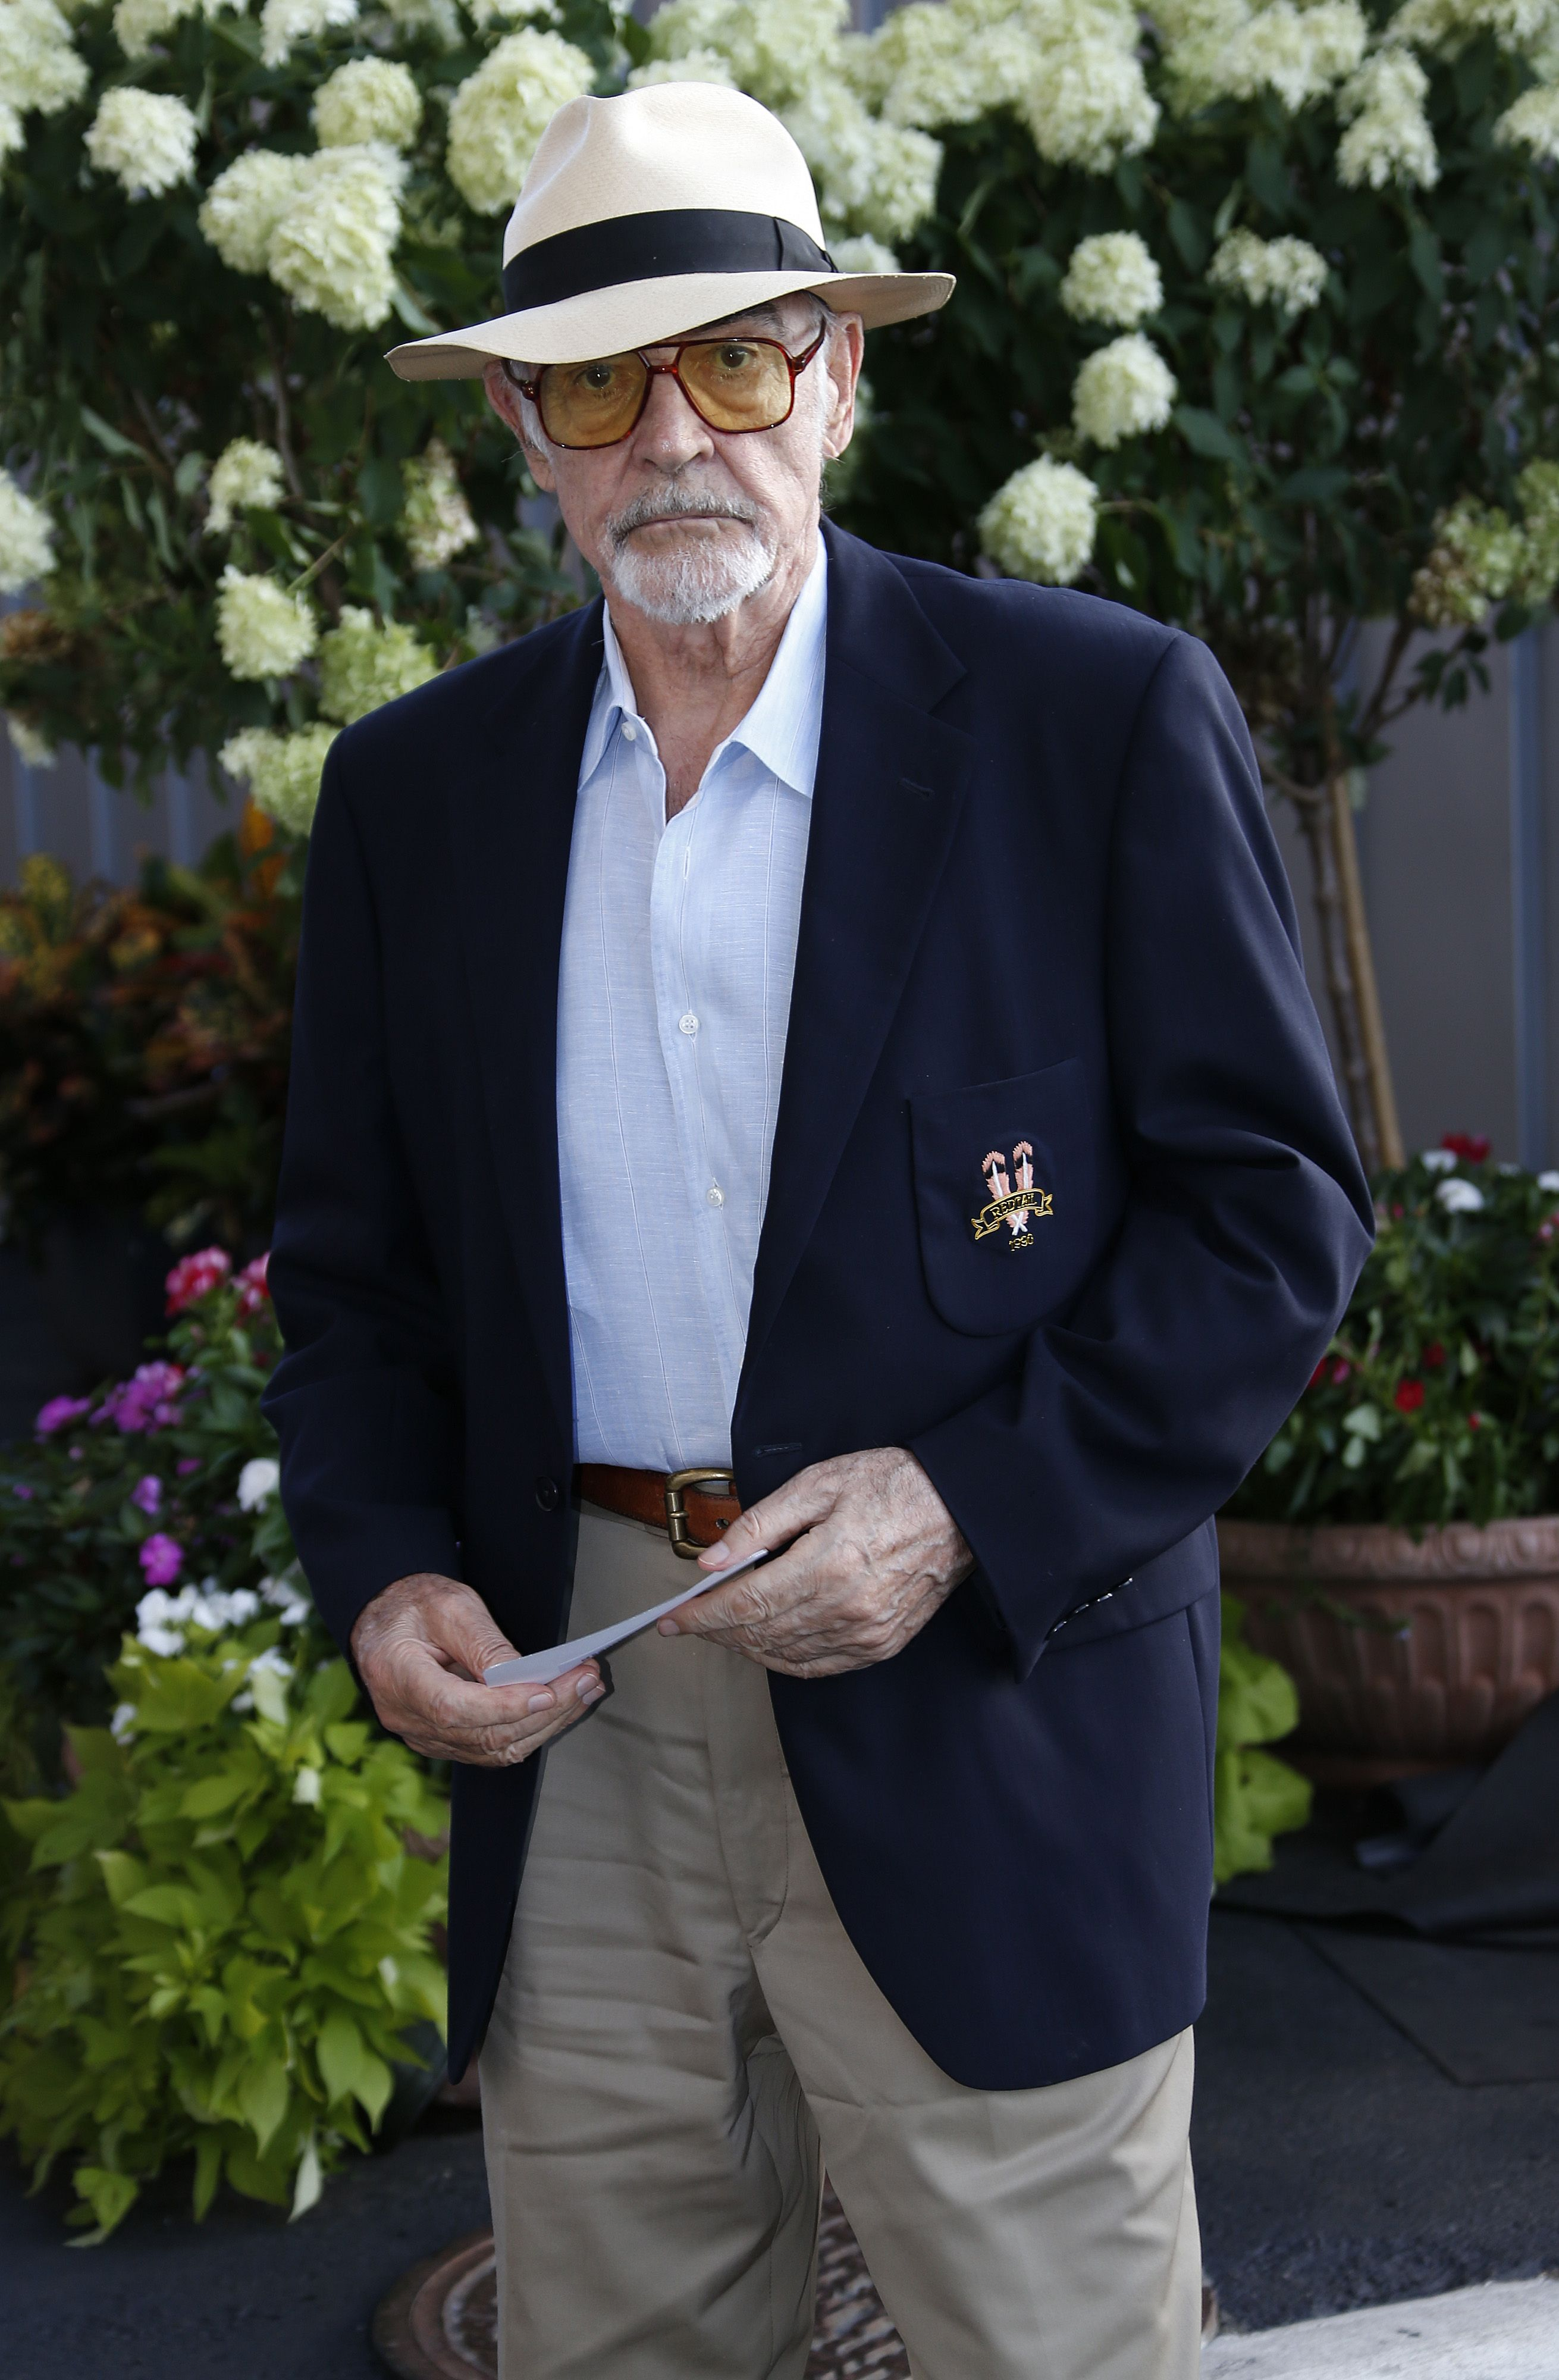 Sean Connery at day twelve of the 2015 US Open at USTA Billie Jean King National Tennis Center on September 11, 2015.   Photo: Getty Images